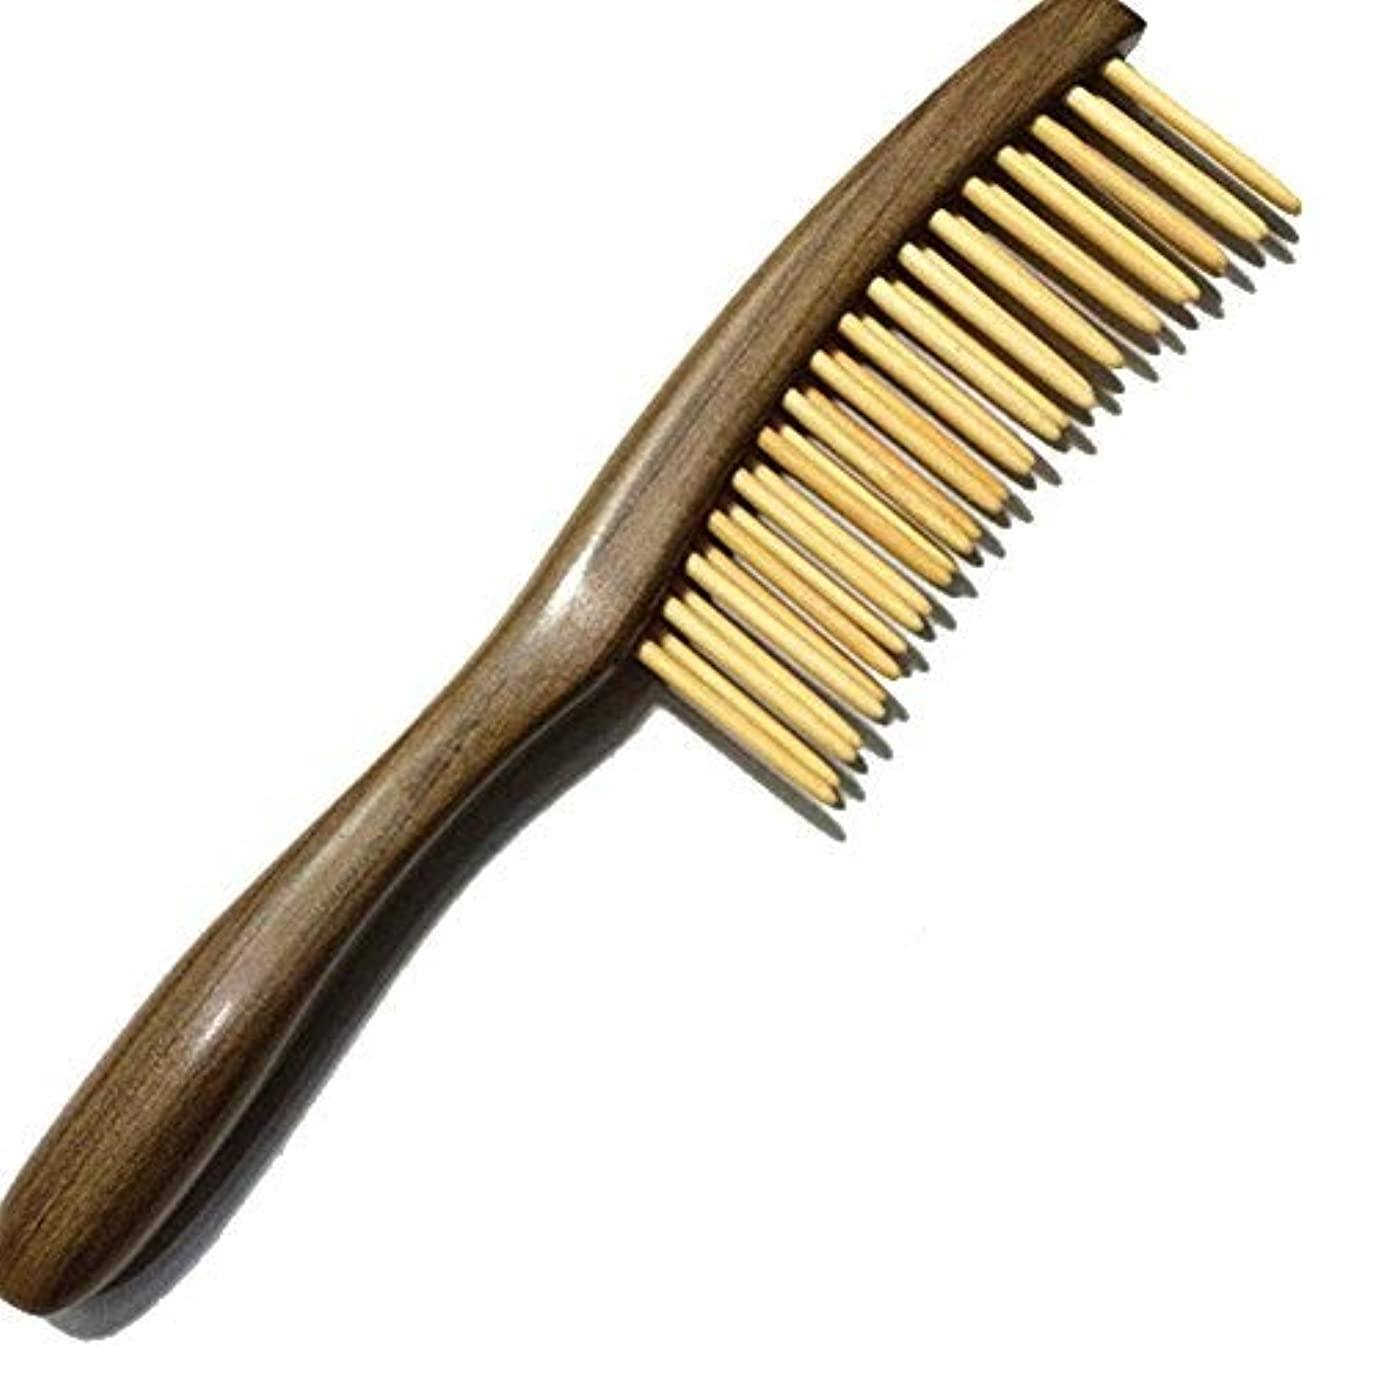 ビン高原イソギンチャクFitlyiee Double Rows Teeth Sandalwood Hair Comb Anti-Static Handmade Wide Tooth Wooden Comb [並行輸入品]